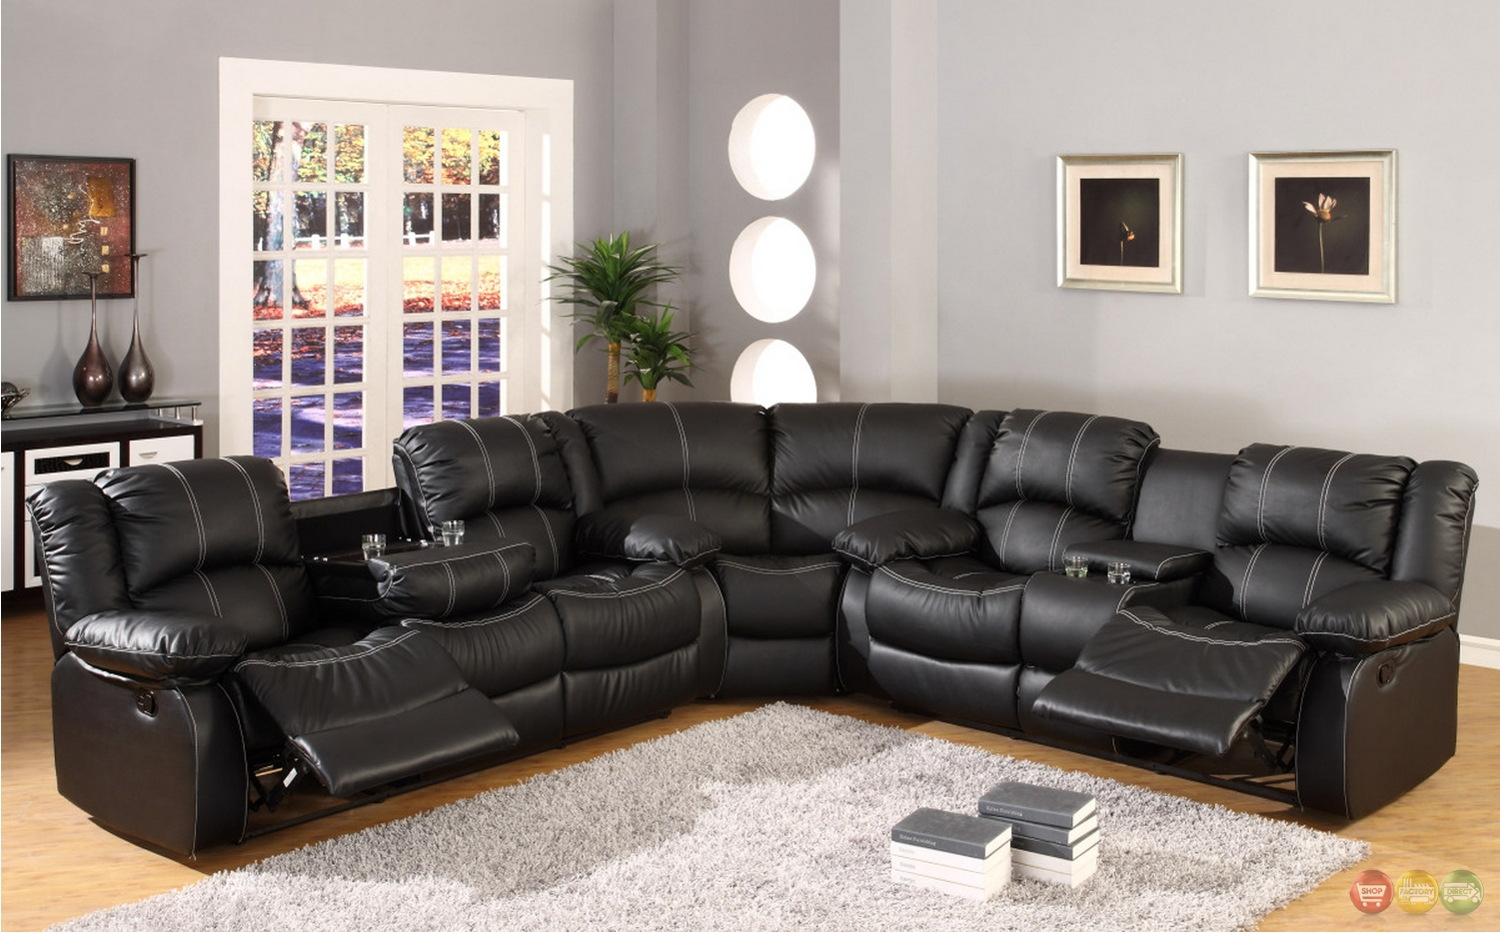 Sofas Center : Reclining Sofas With Consoles Dual Sofa Center Throughout Sofas With Console (Image 18 of 20)